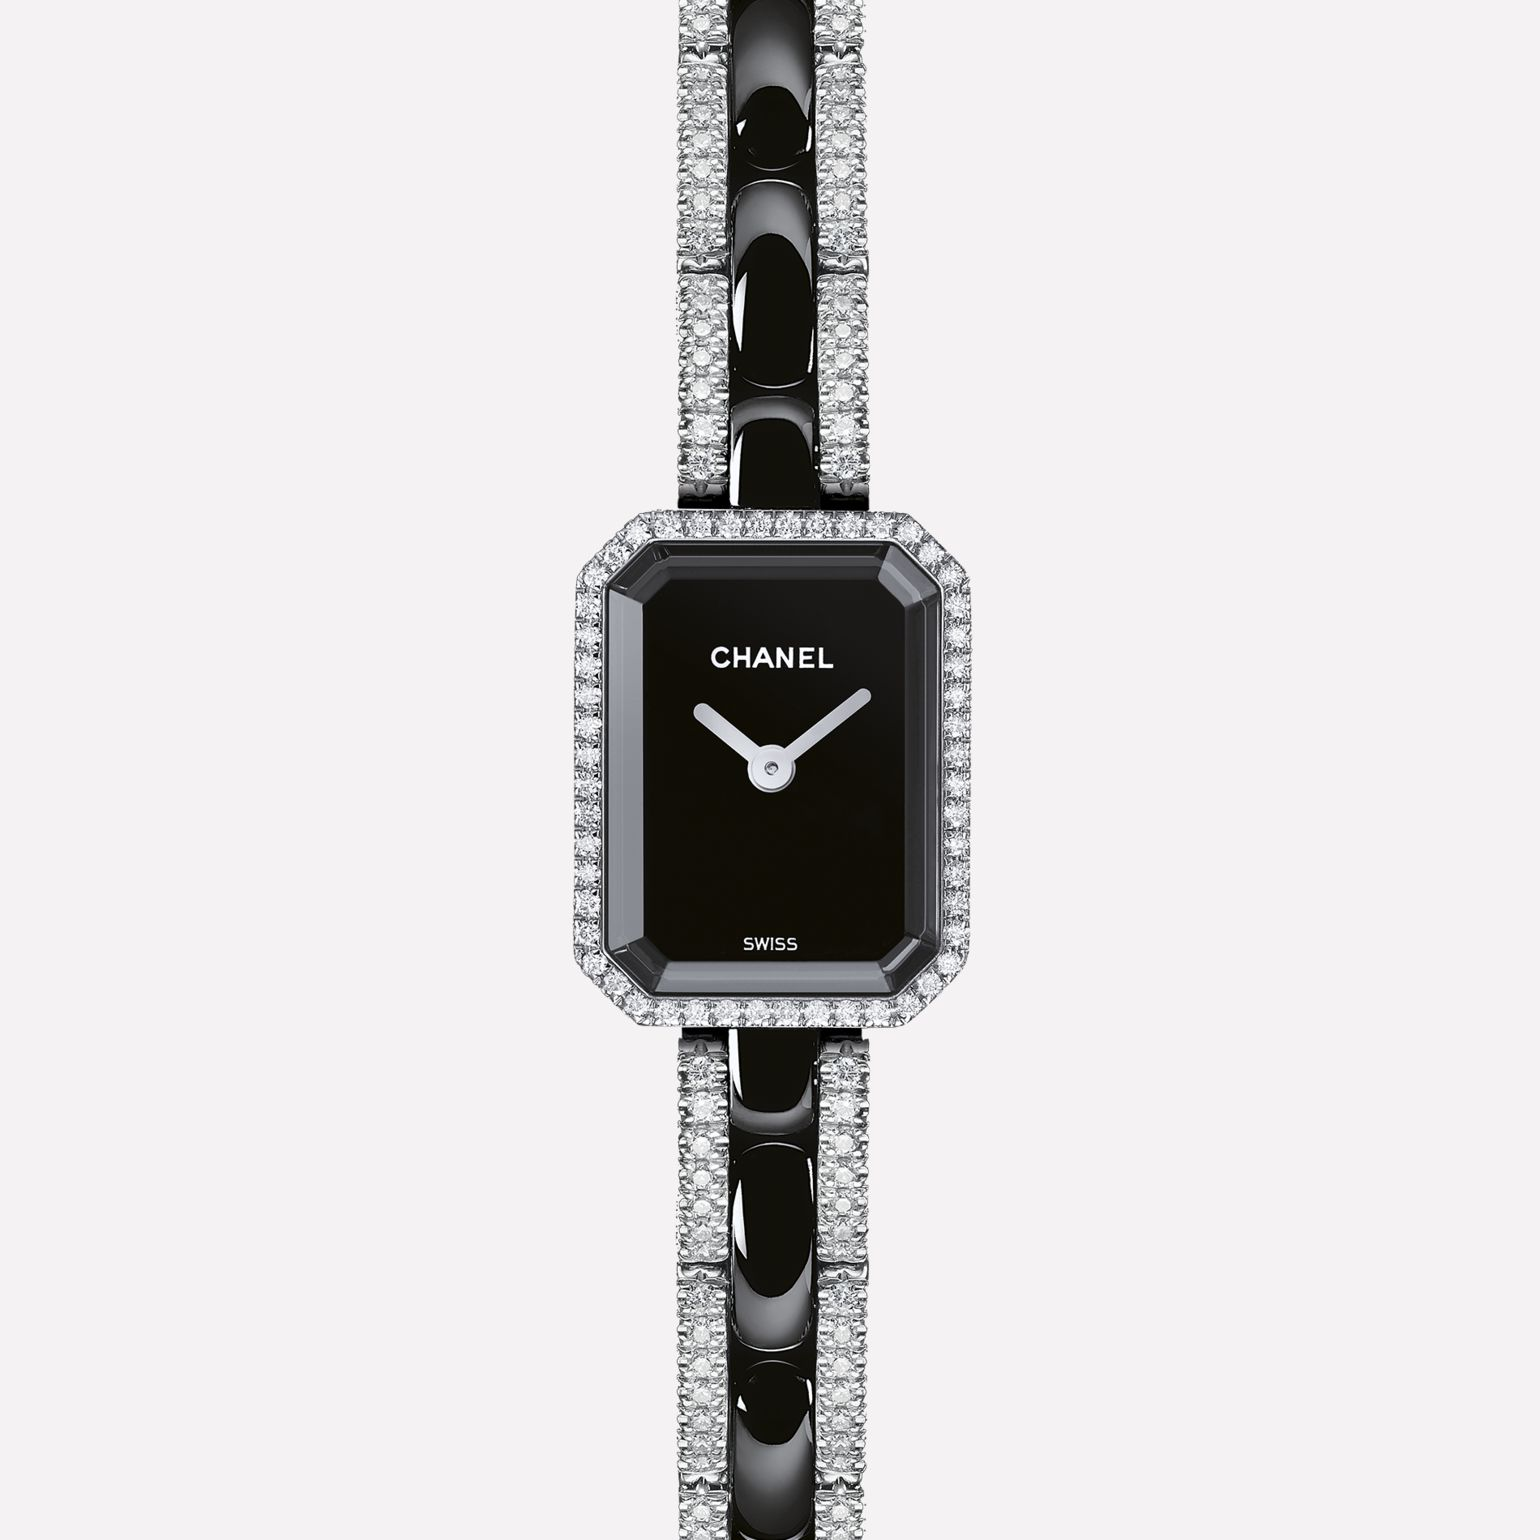 Première Mini Watch White gold and black ceramic, diamonds, black dial